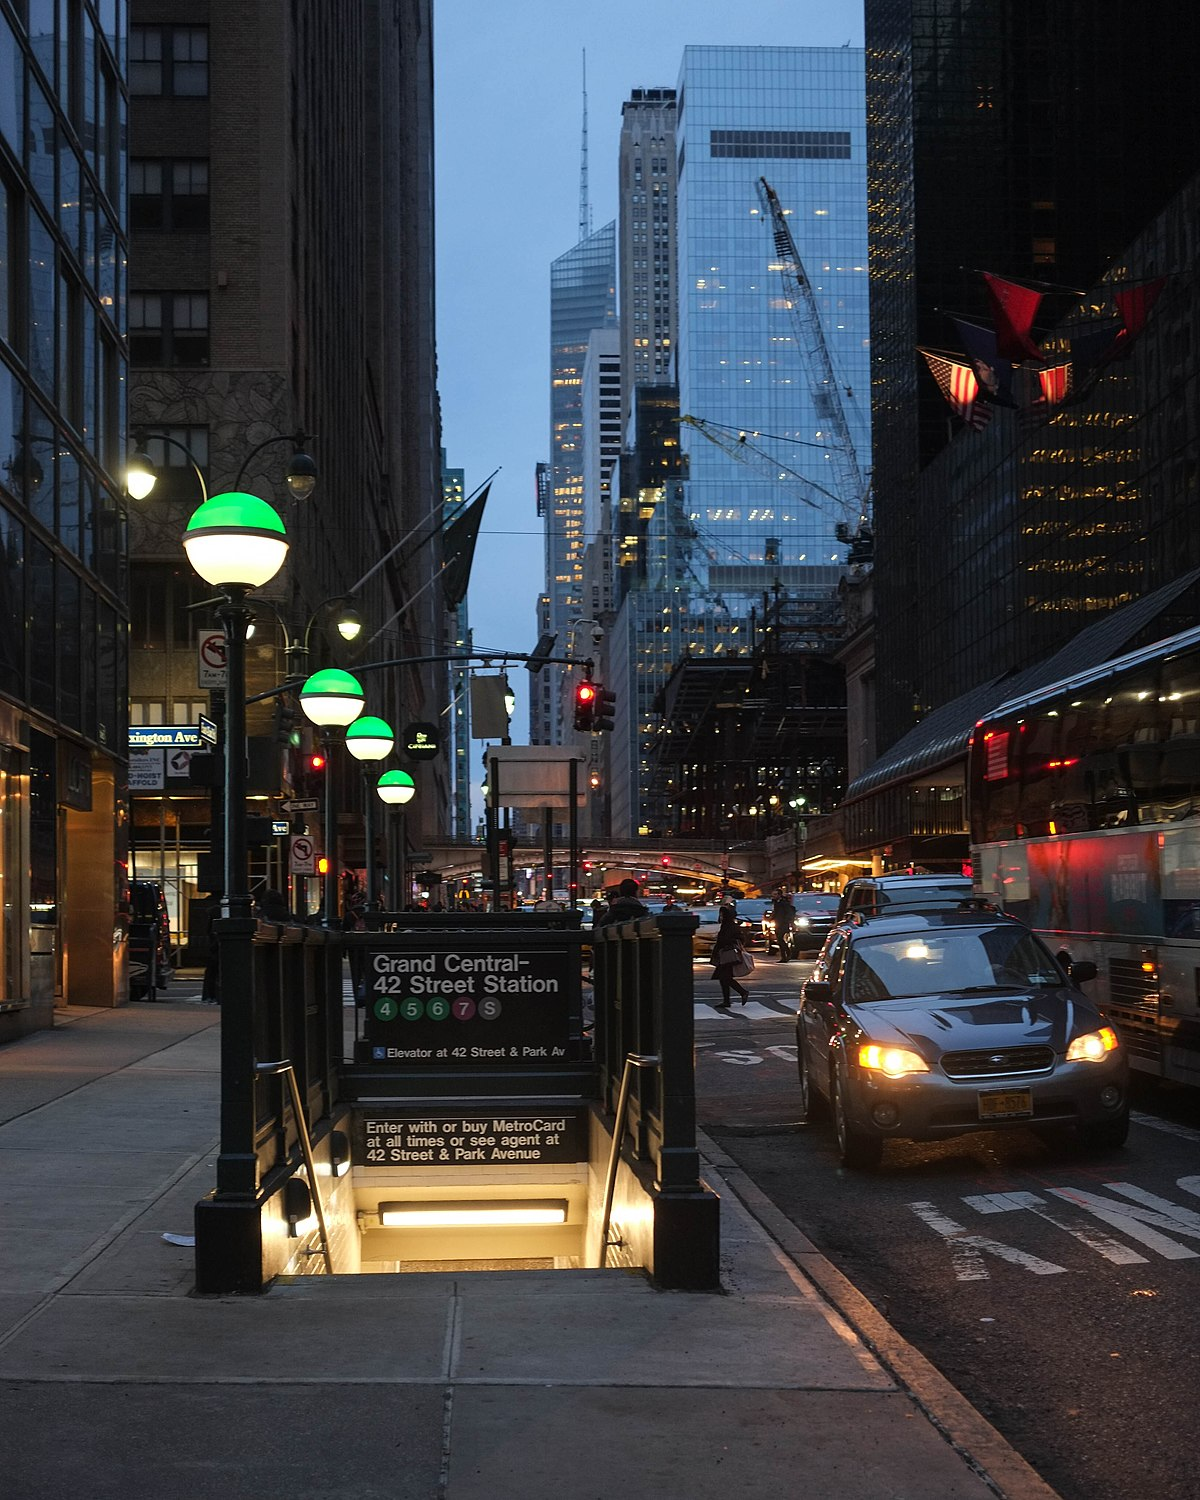 26a76be25c05 Grand Central–42nd Street (New York City Subway) - Wikipedia